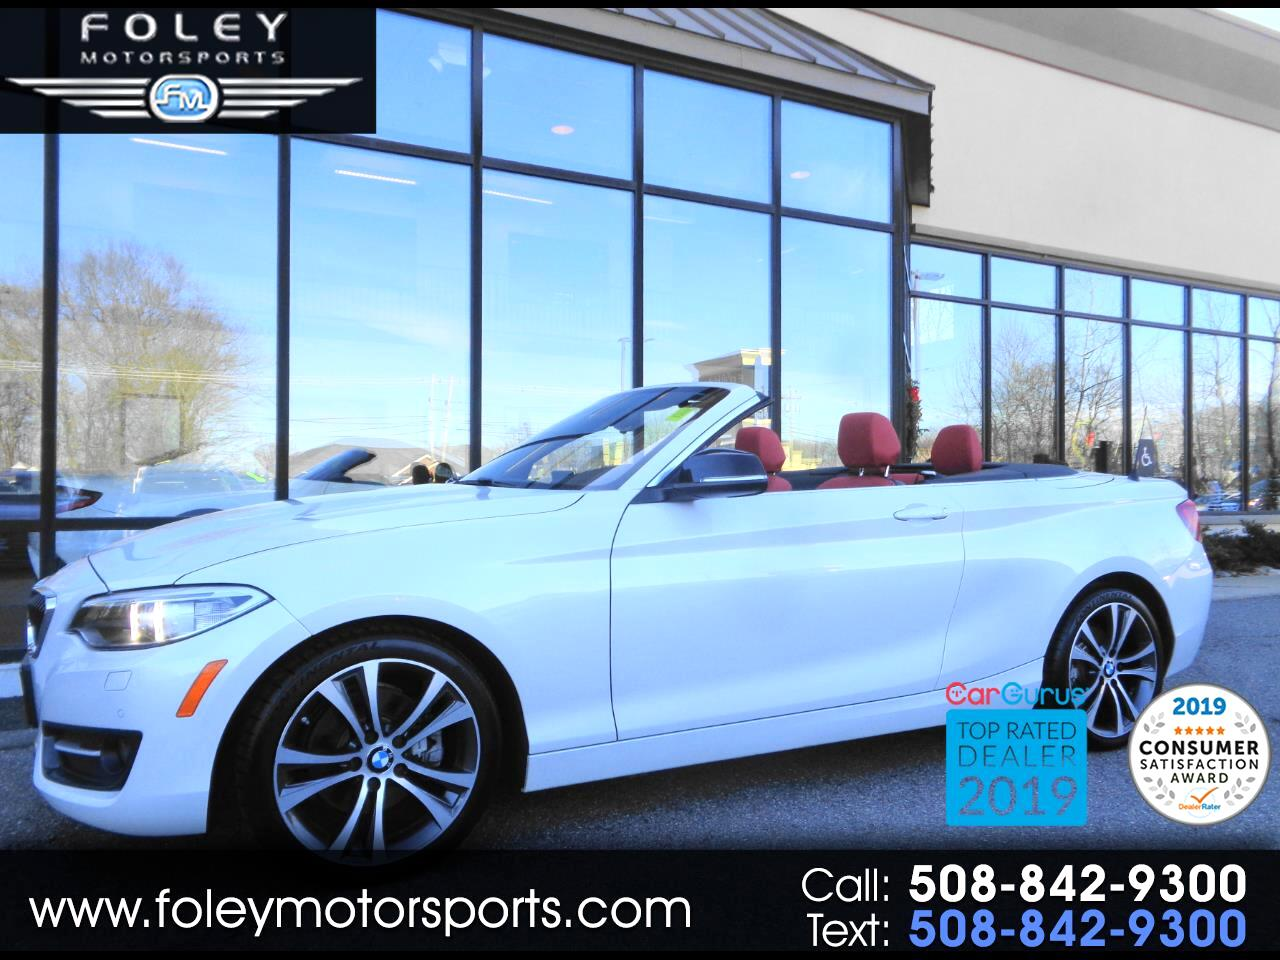 BMW 2 Series 2dr Conv 228i xDrive AWD 2015